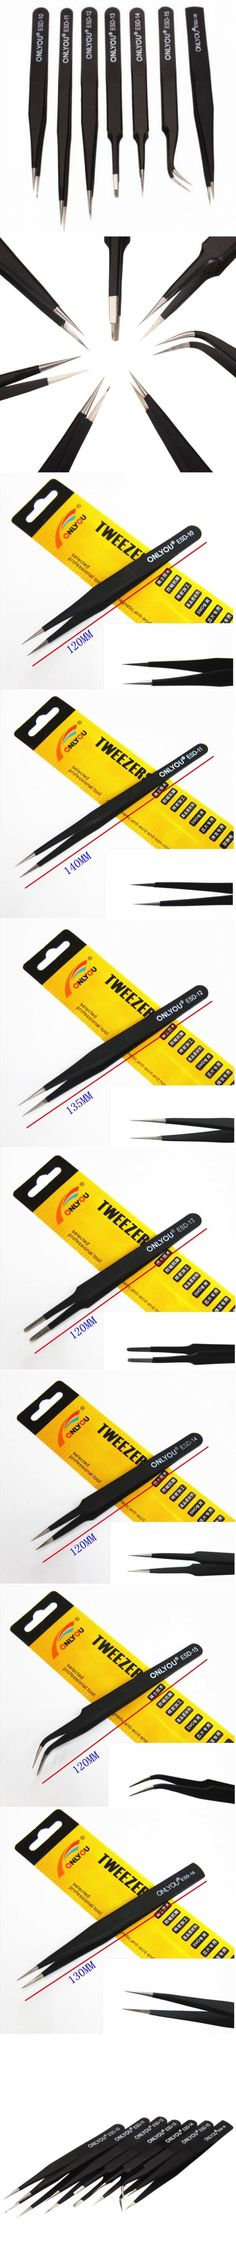 7pcs BGA Precision Tweezer Set Antistatic Tweezers Stainless Tweezers